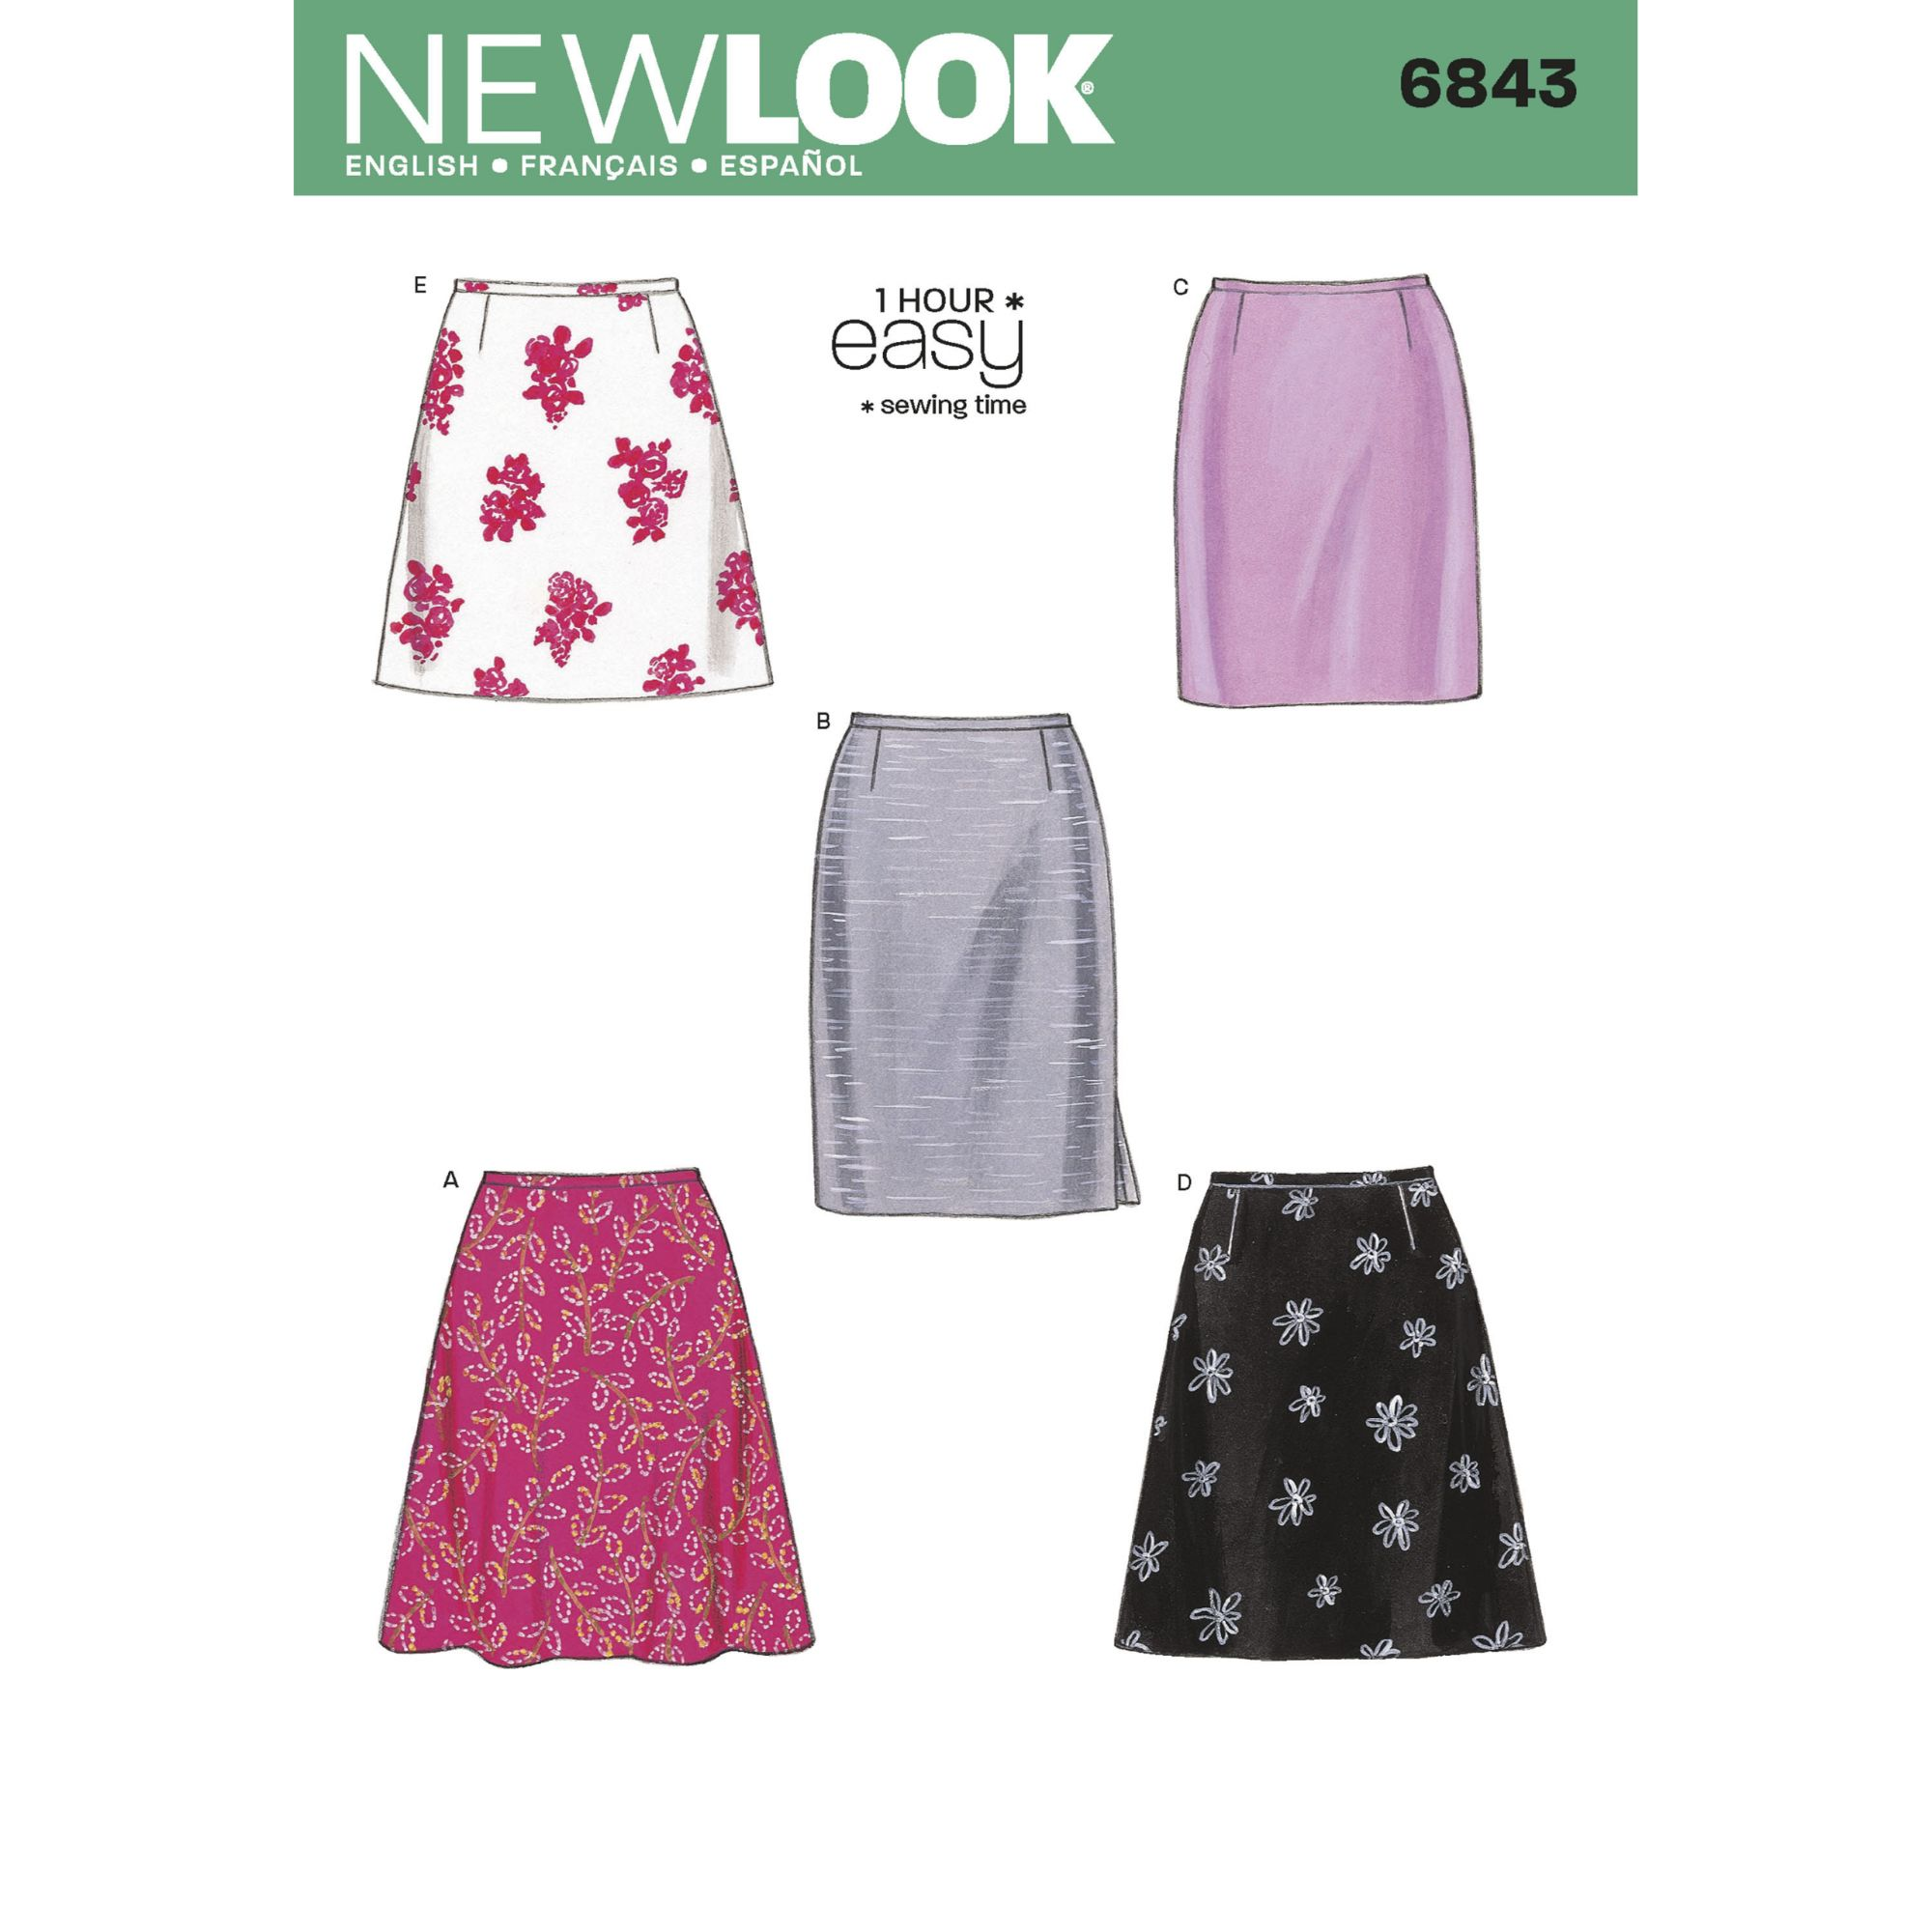 New Look 6483 sewing pattern